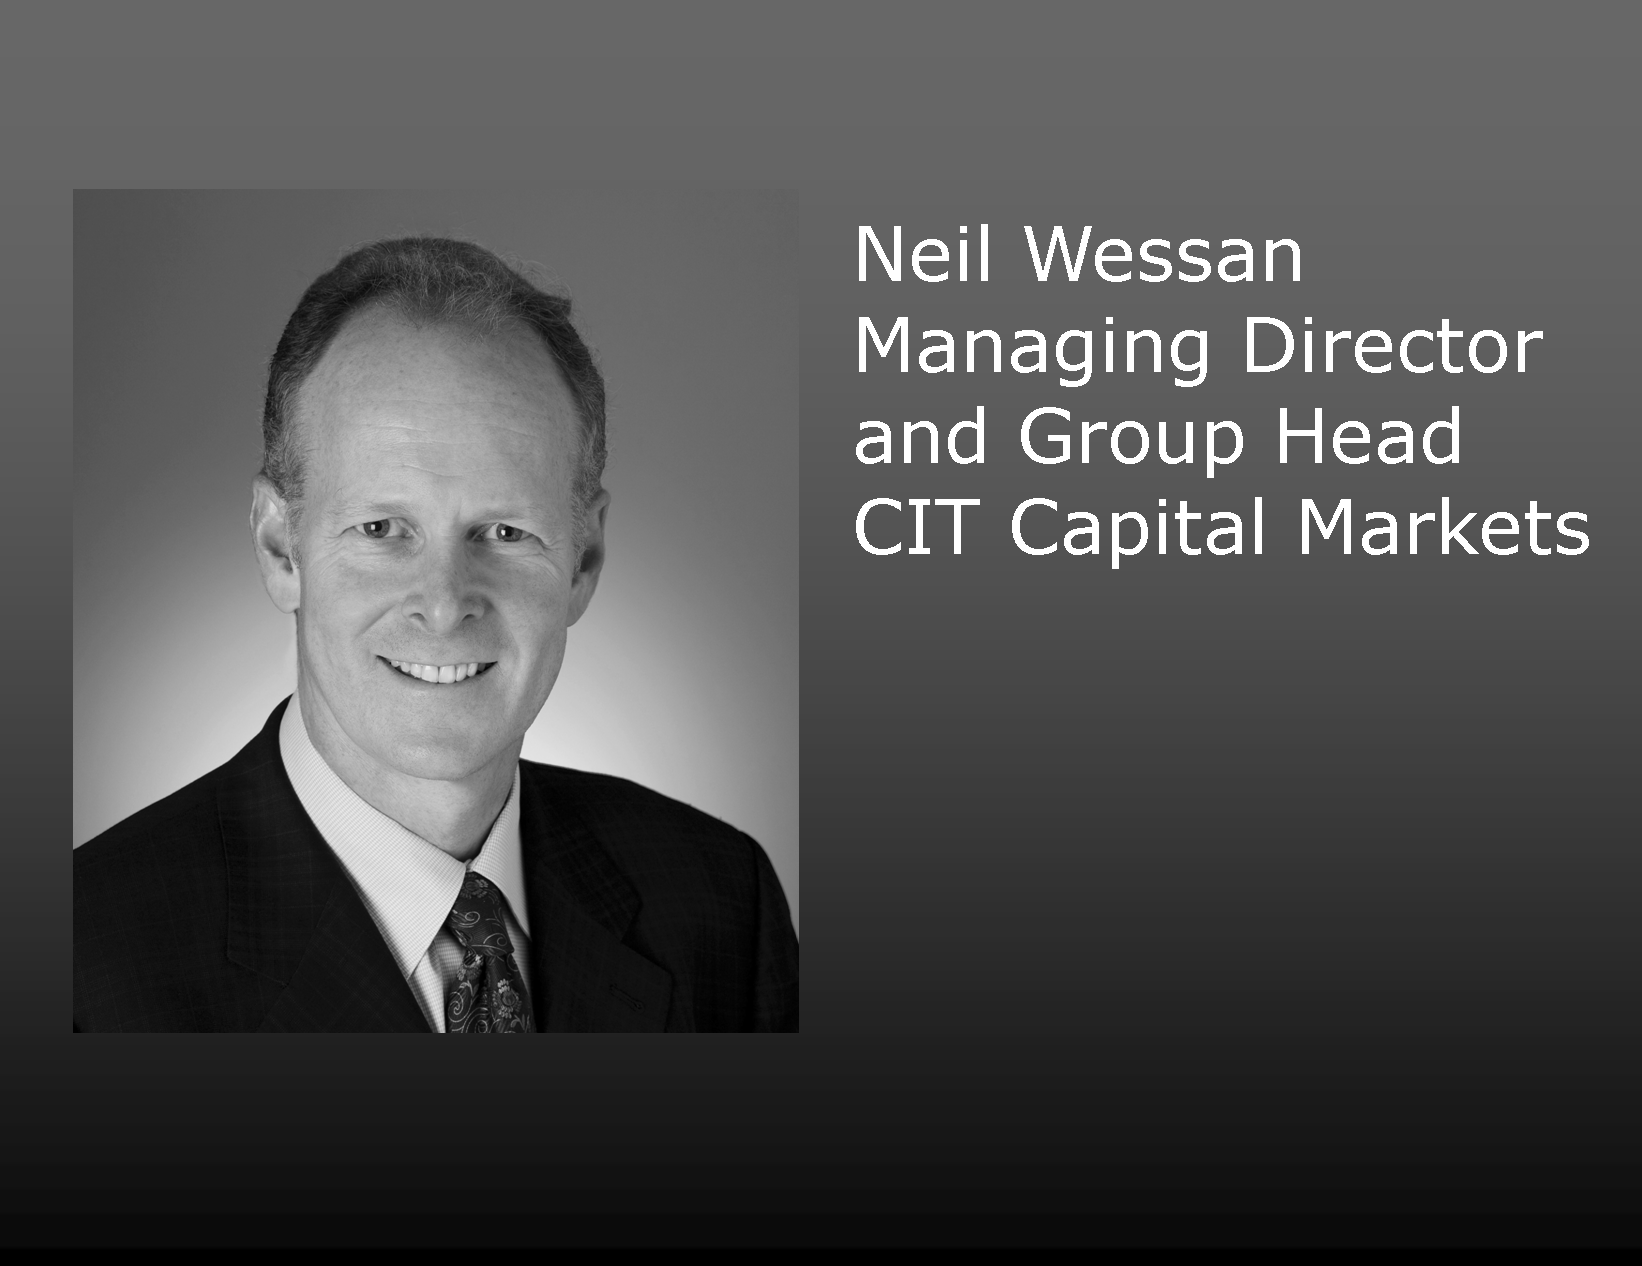 Neil Wessan Appointed New Group Head of CIT Capital Markets